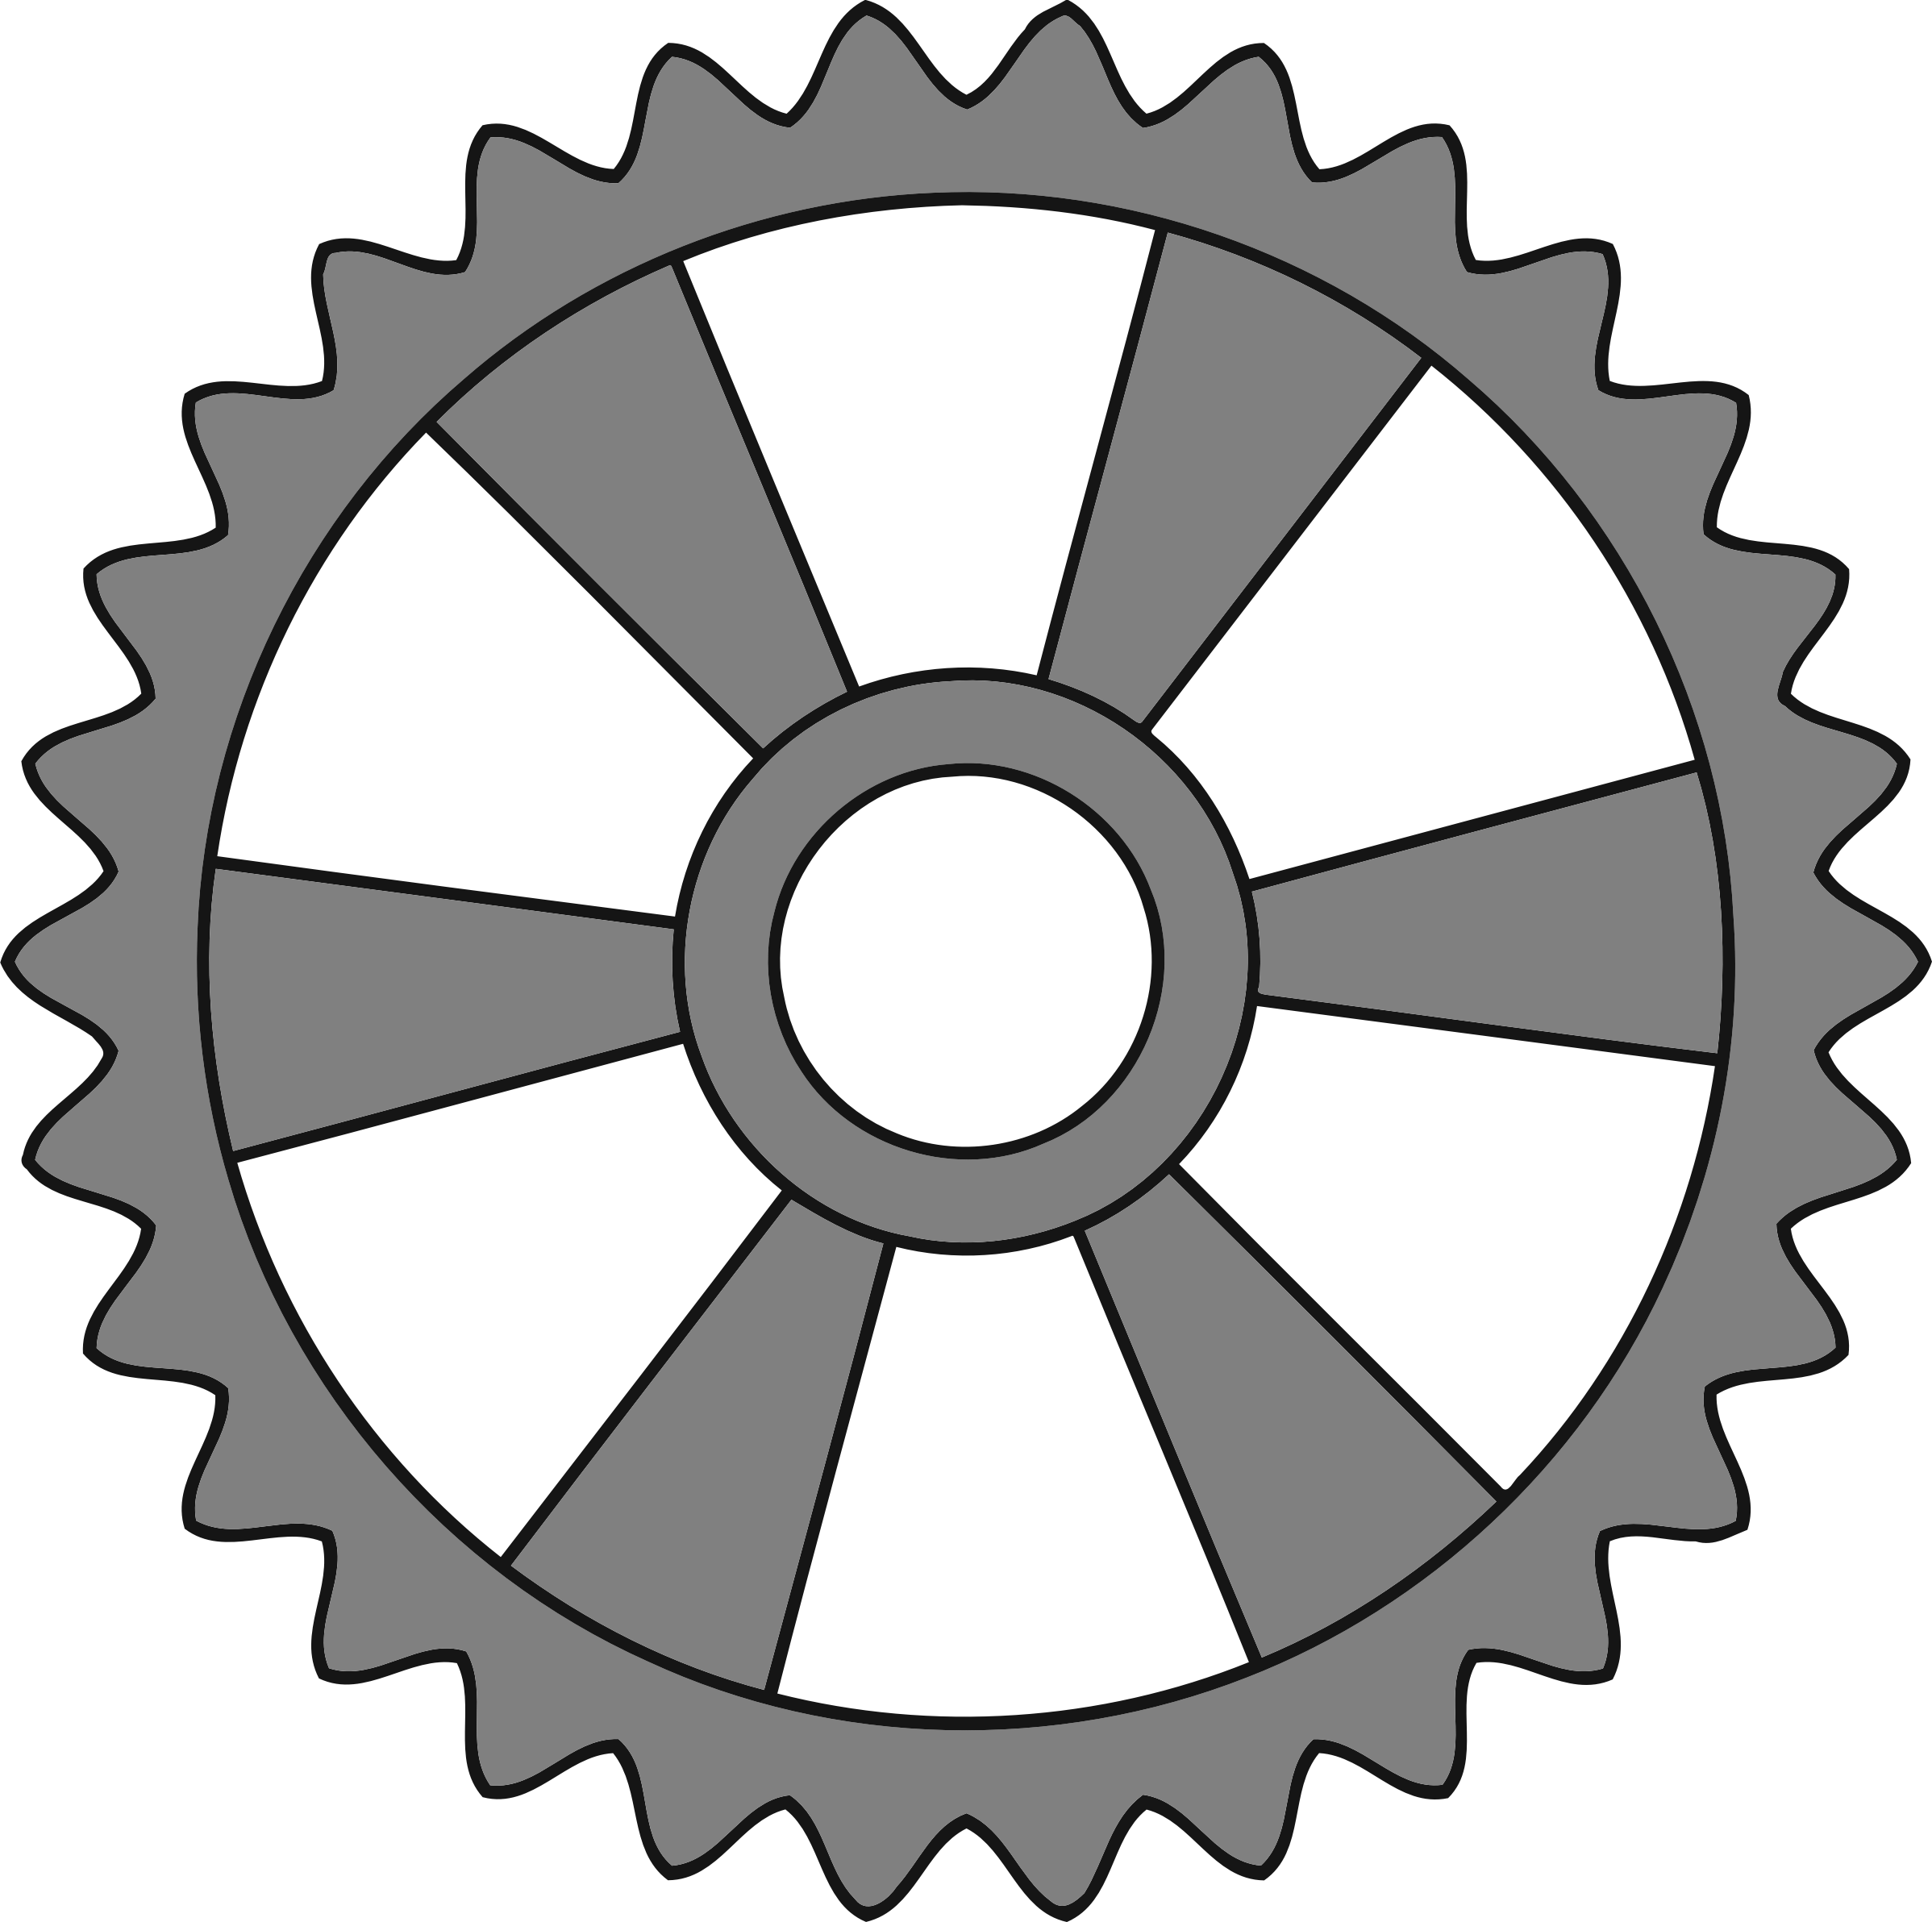 30-tooth gear with radial spokes by Firkin